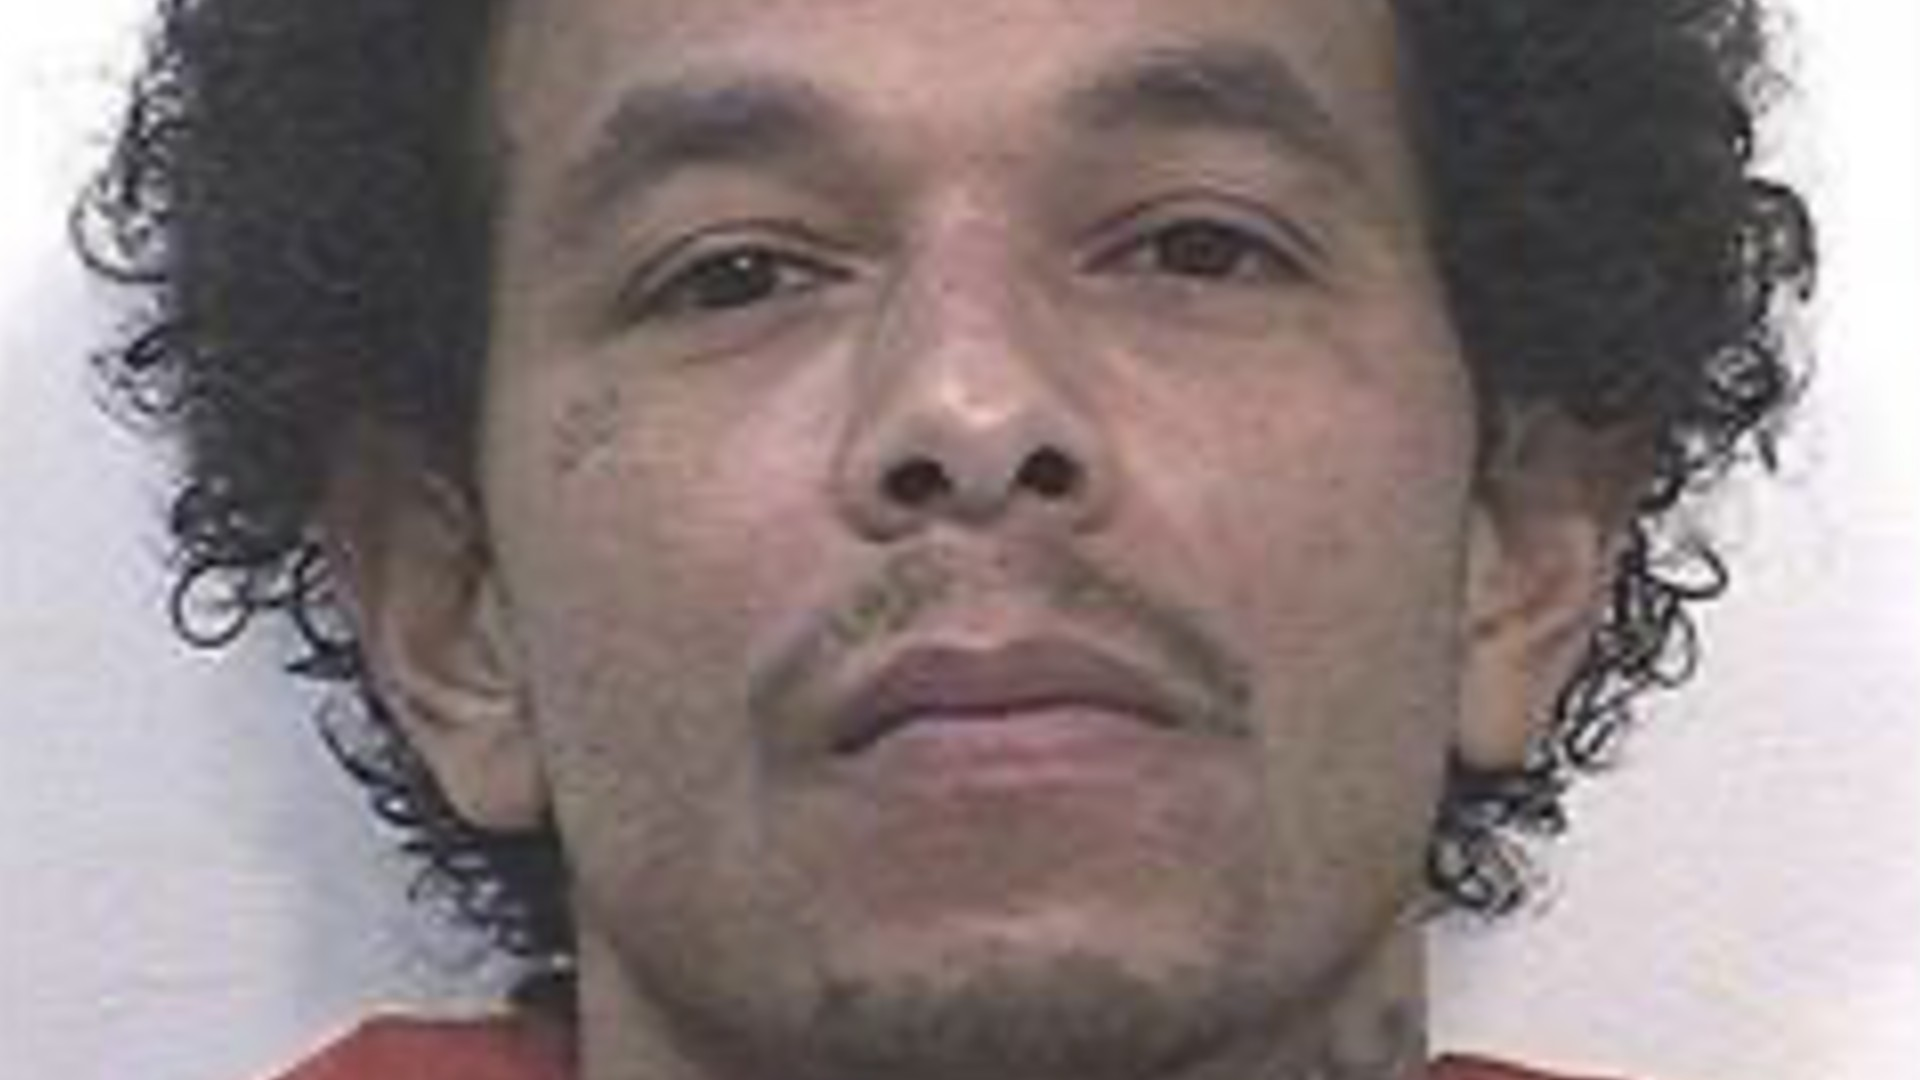 Bryant Jefferson is seen in an image provided by the California Department of Corrections and Rehabilitation.